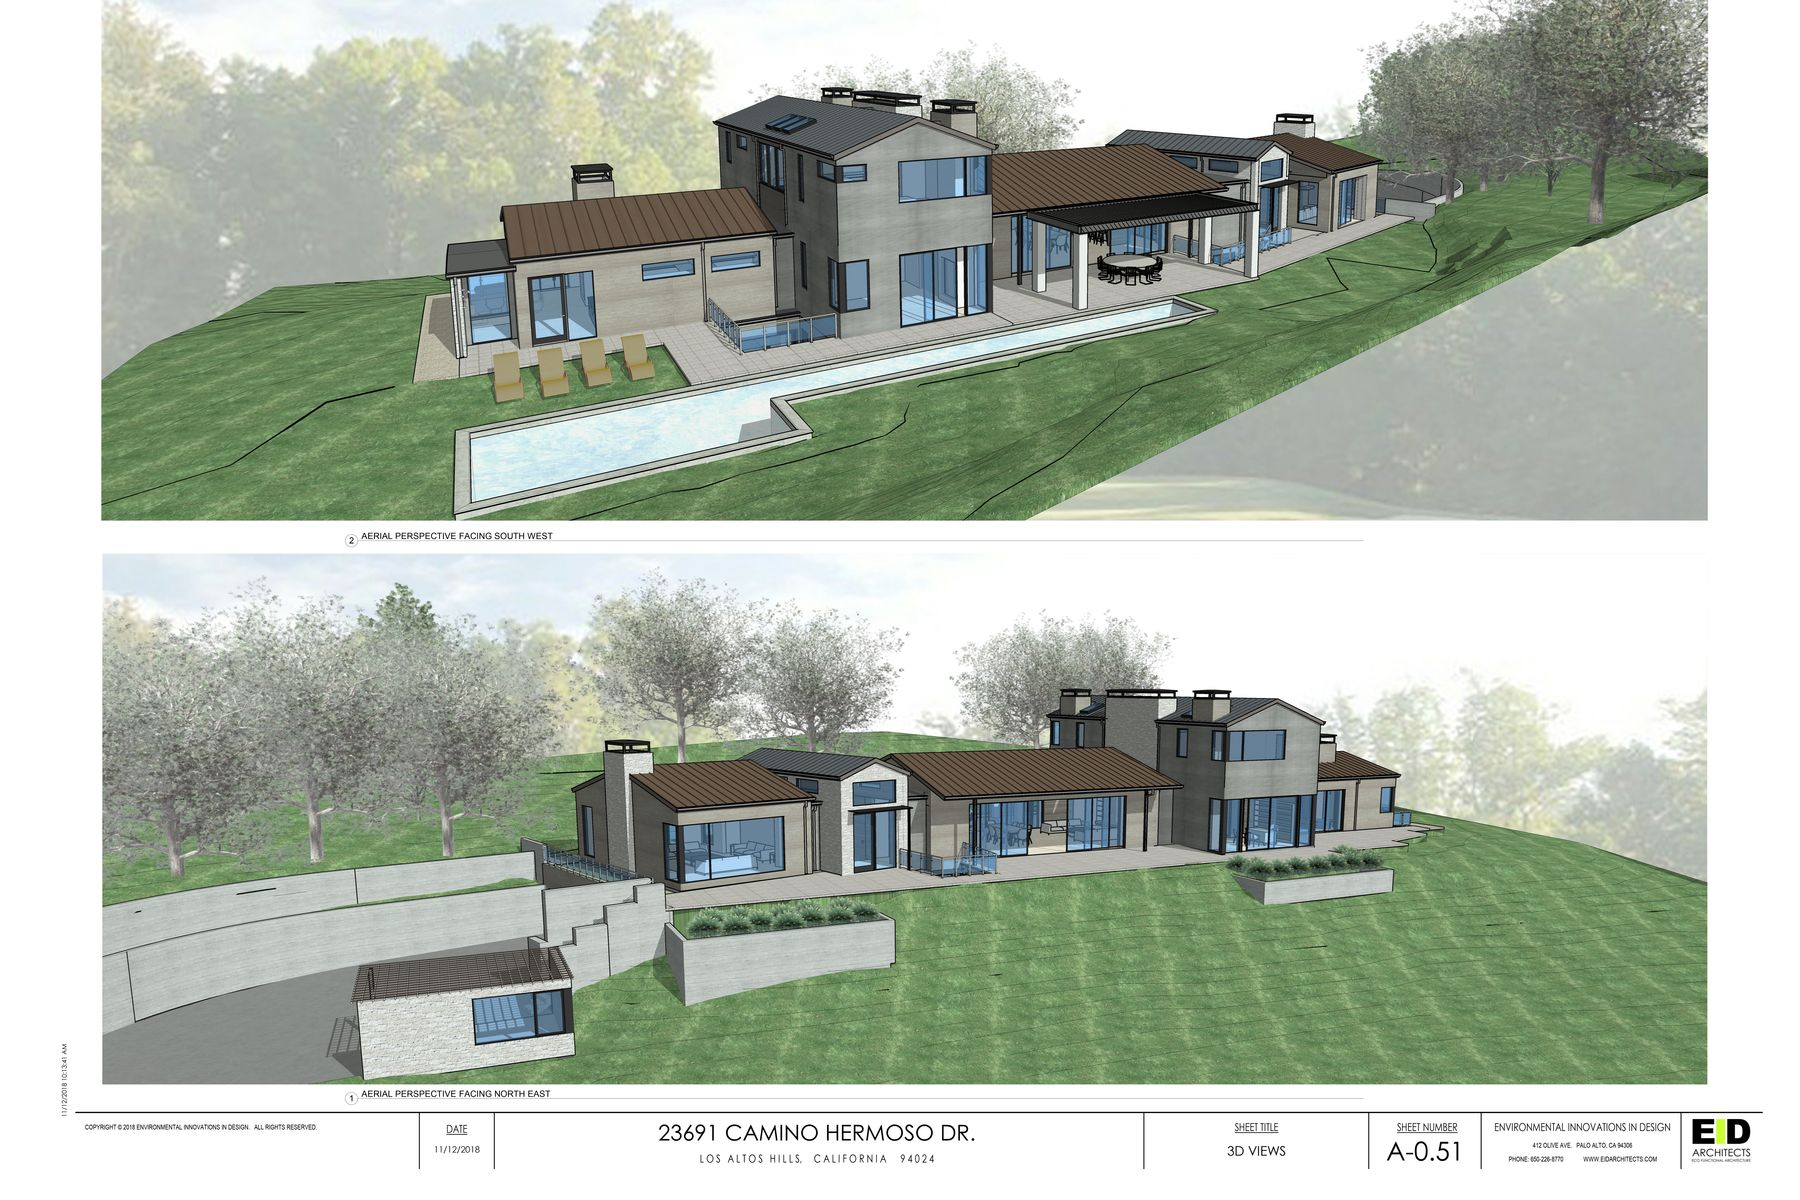 Single Family Home for Active at LAH 1.3 acres w/ Plans for Modern Home 23691 Camino Hermoso Dr Los Altos Hills, California 94024 United States